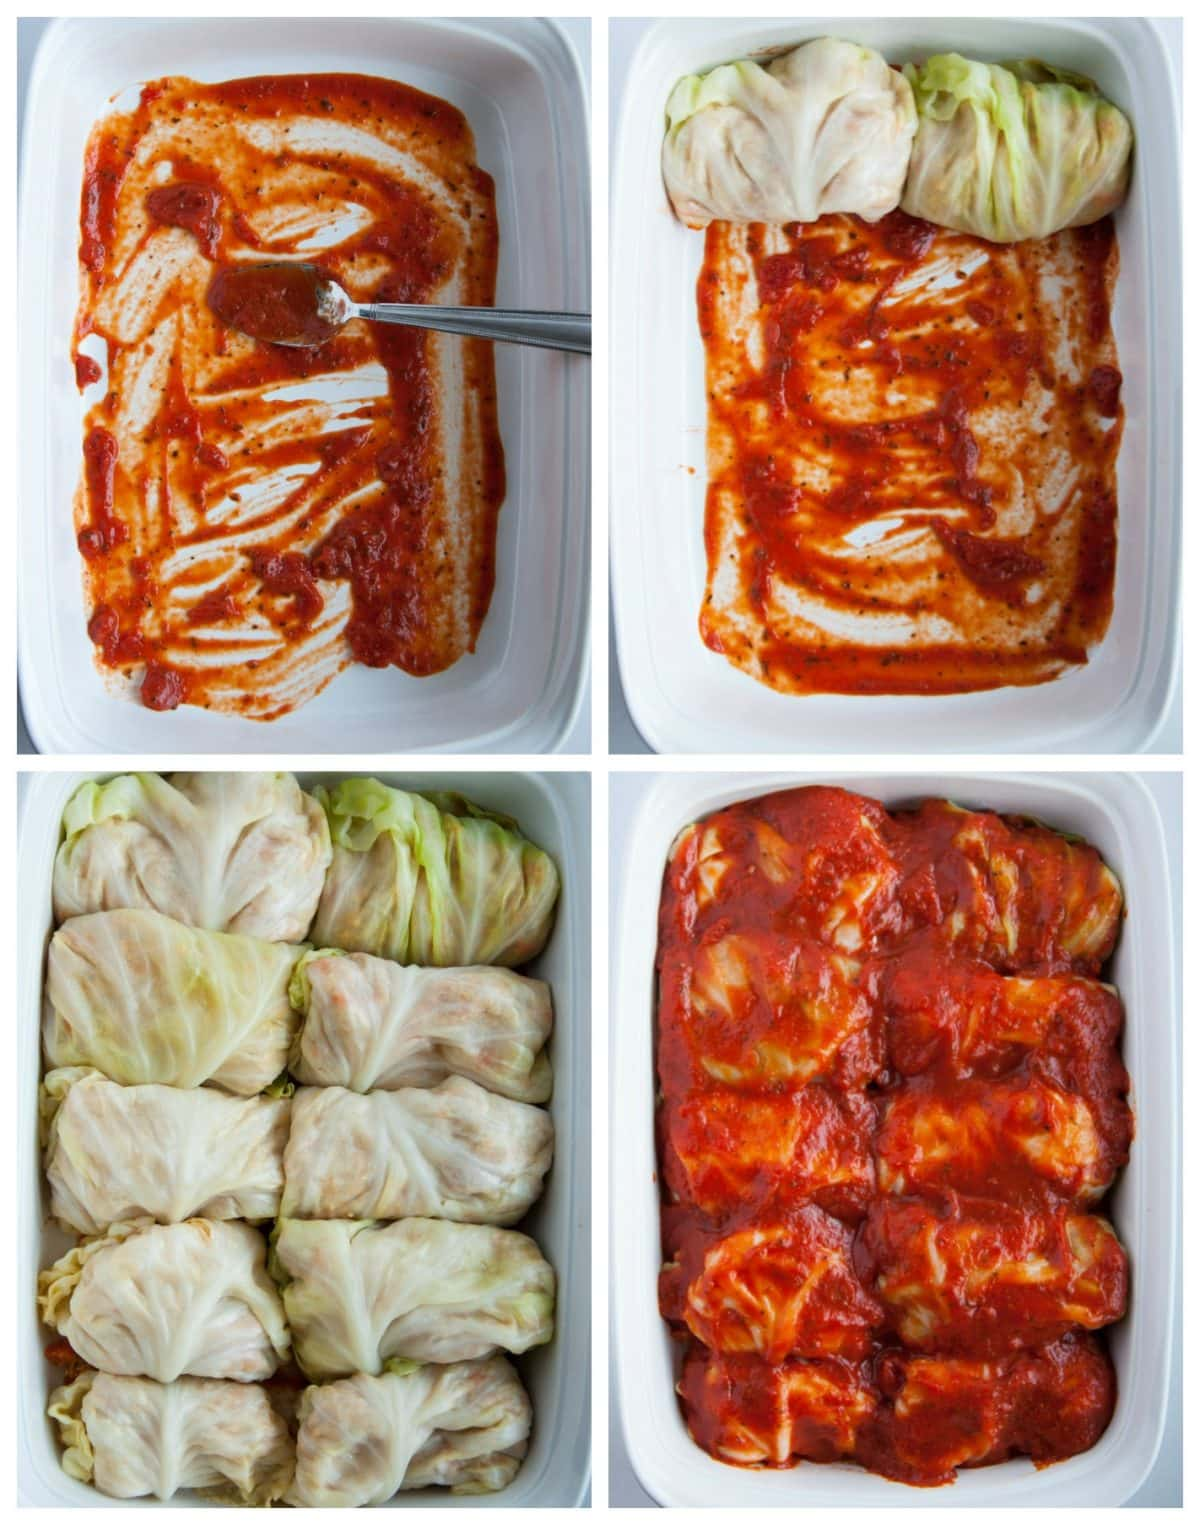 Sauce covered turkey cabbage rolls are filling, light, and healthy with over 17 grams of protein in each 240 calorie roll.